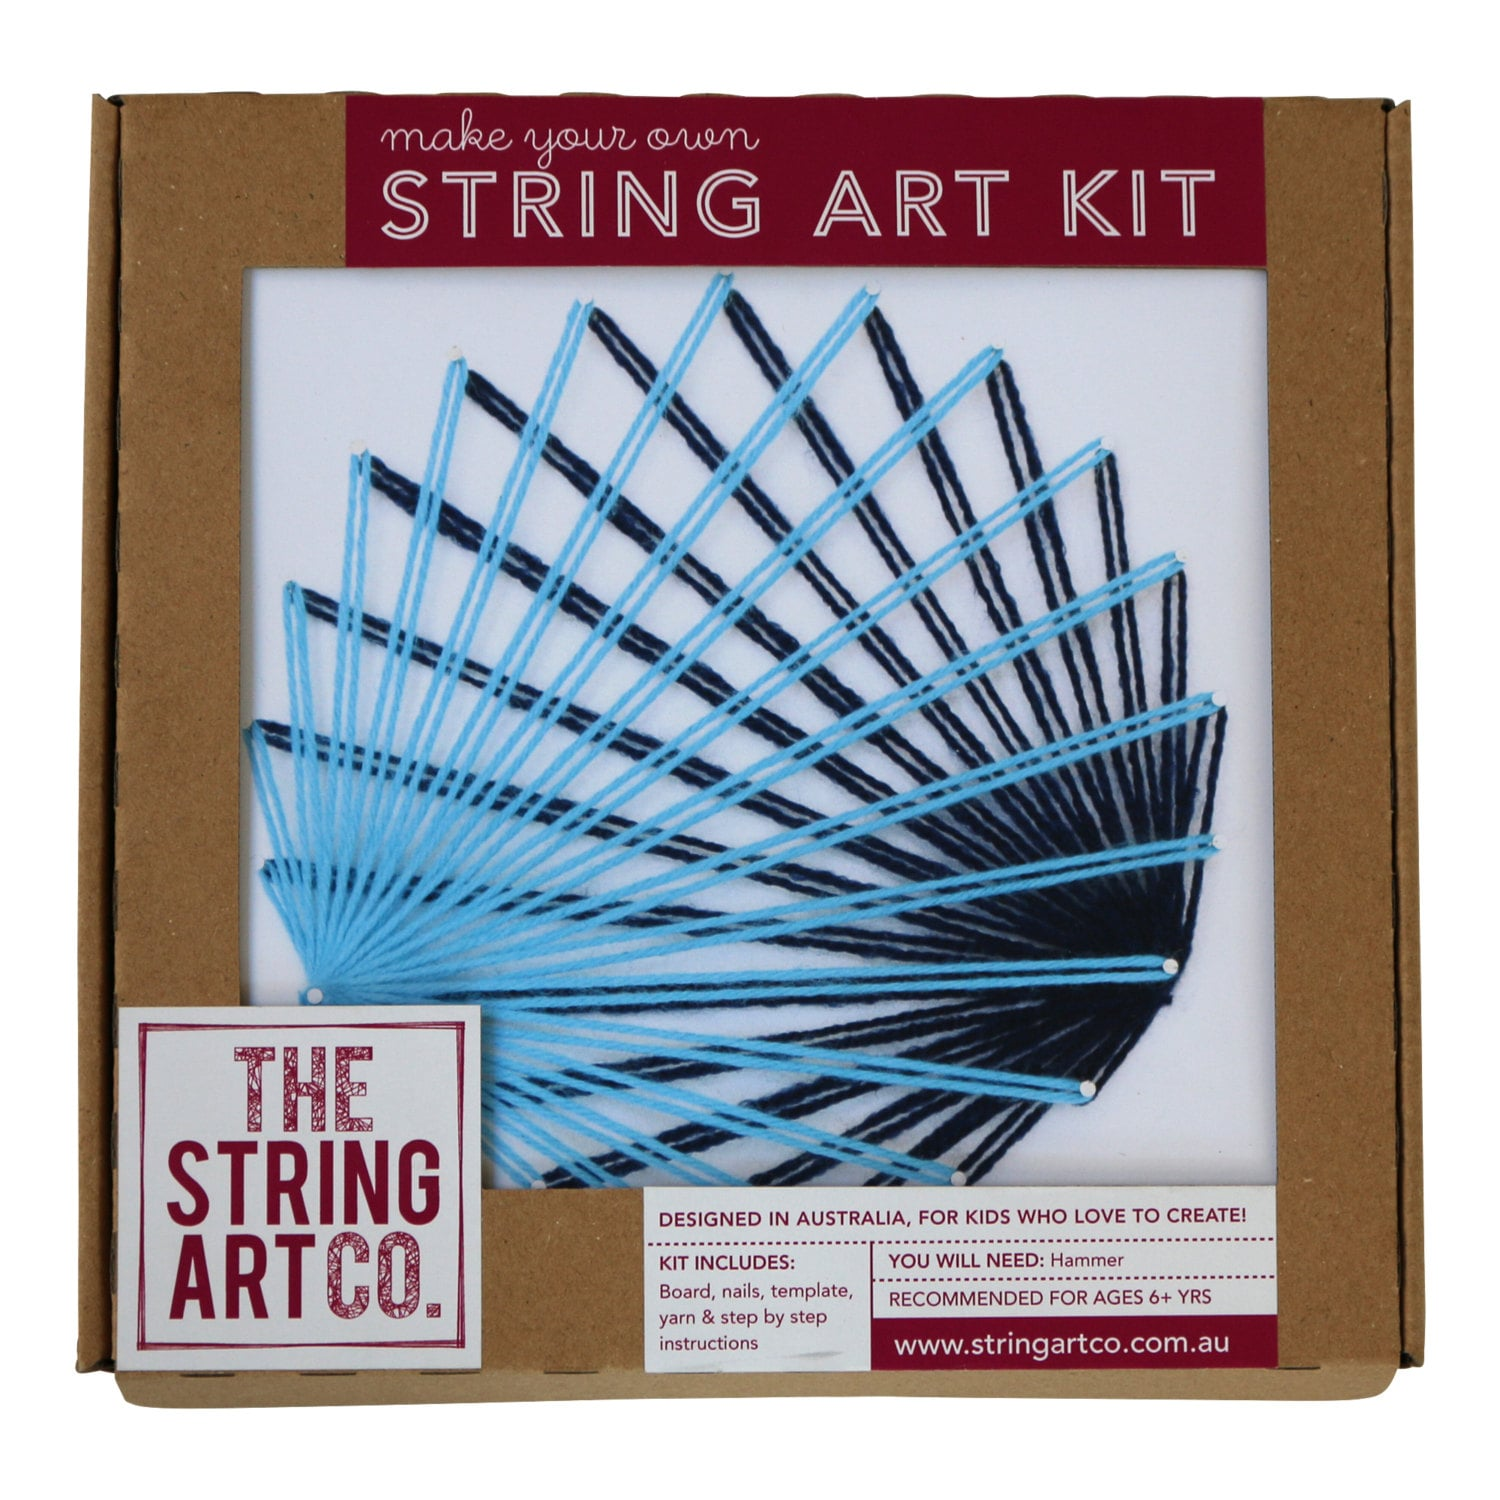 String art craft kit - Sold By Stringartco